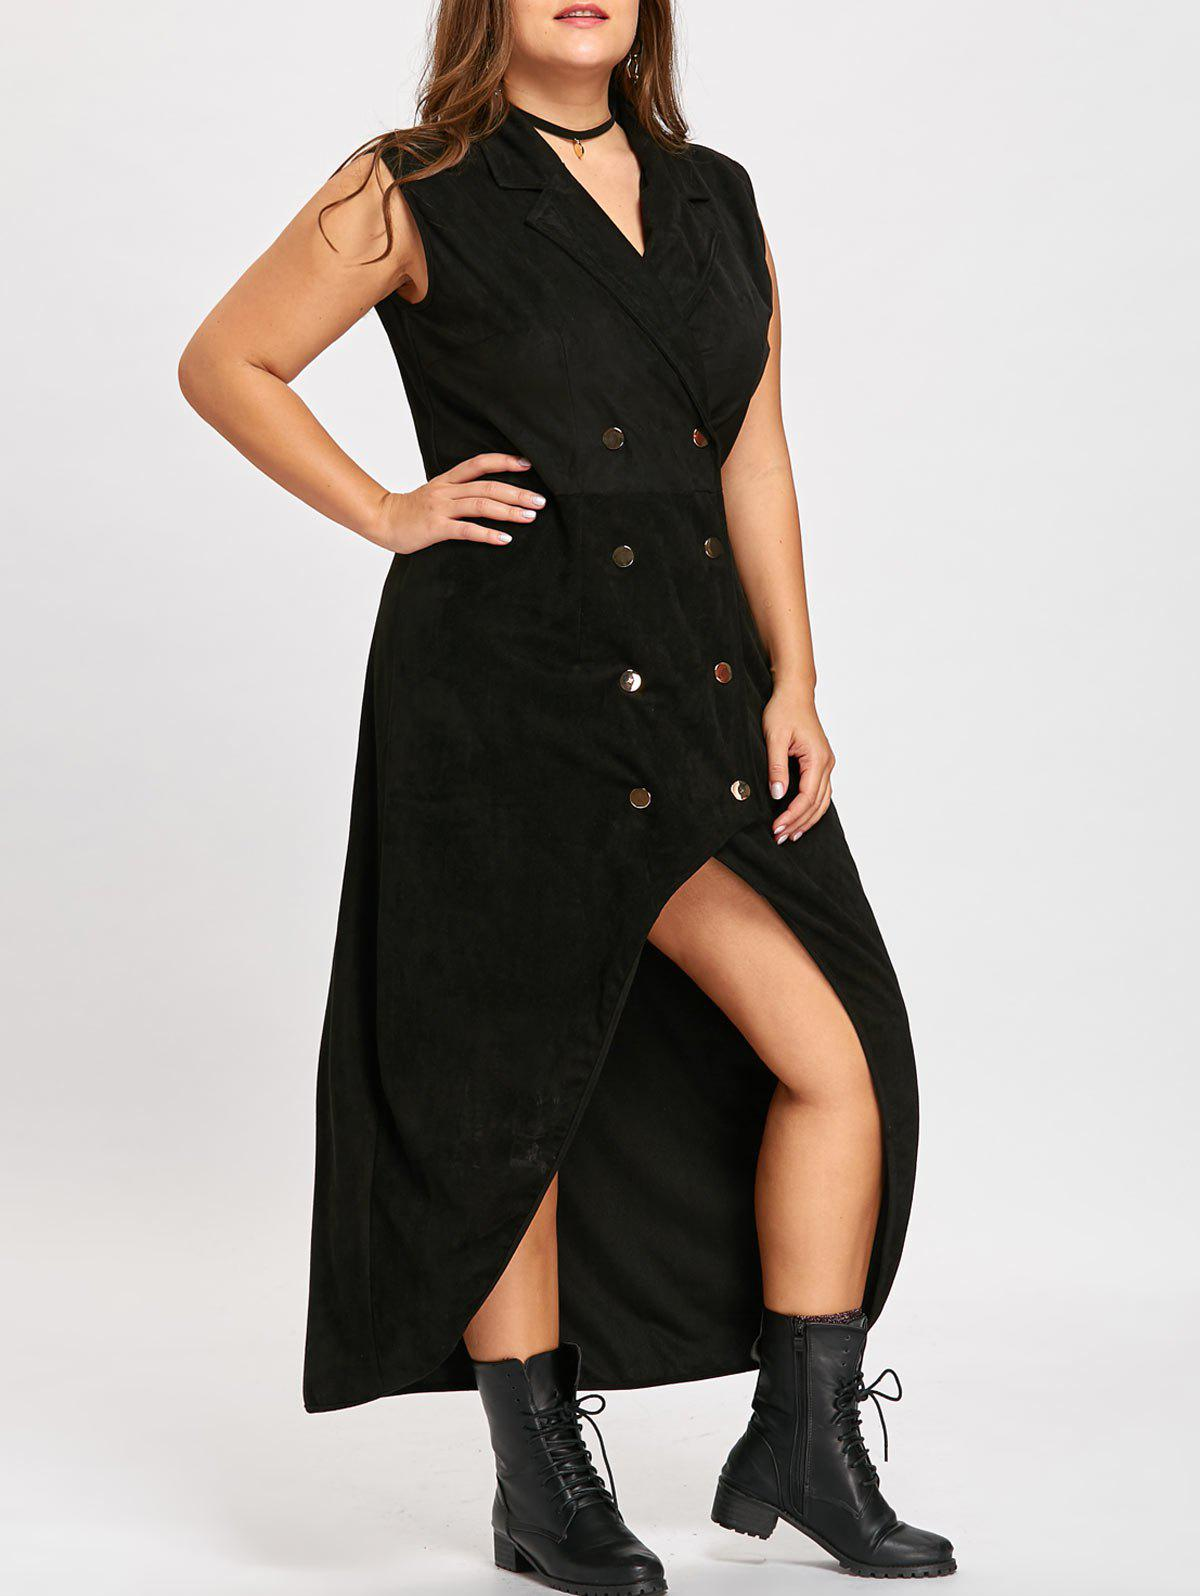 Plus Size Double Breast High Low Long Trench CoatWOMEN<br><br>Size: 5XL; Color: BLACK; Clothes Type: Trench; Material: Cotton Blends,Polyester; Type: Asymmetric Length; Shirt Length: X-Long; Sleeve Length: Sleeveless; Collar: Lapel; Closure Type: Double Breasted; Pattern Type: Solid; Style: Fashion; Season: Fall; Weight: 0.7500kg; Package Contents: 1 x Coat;